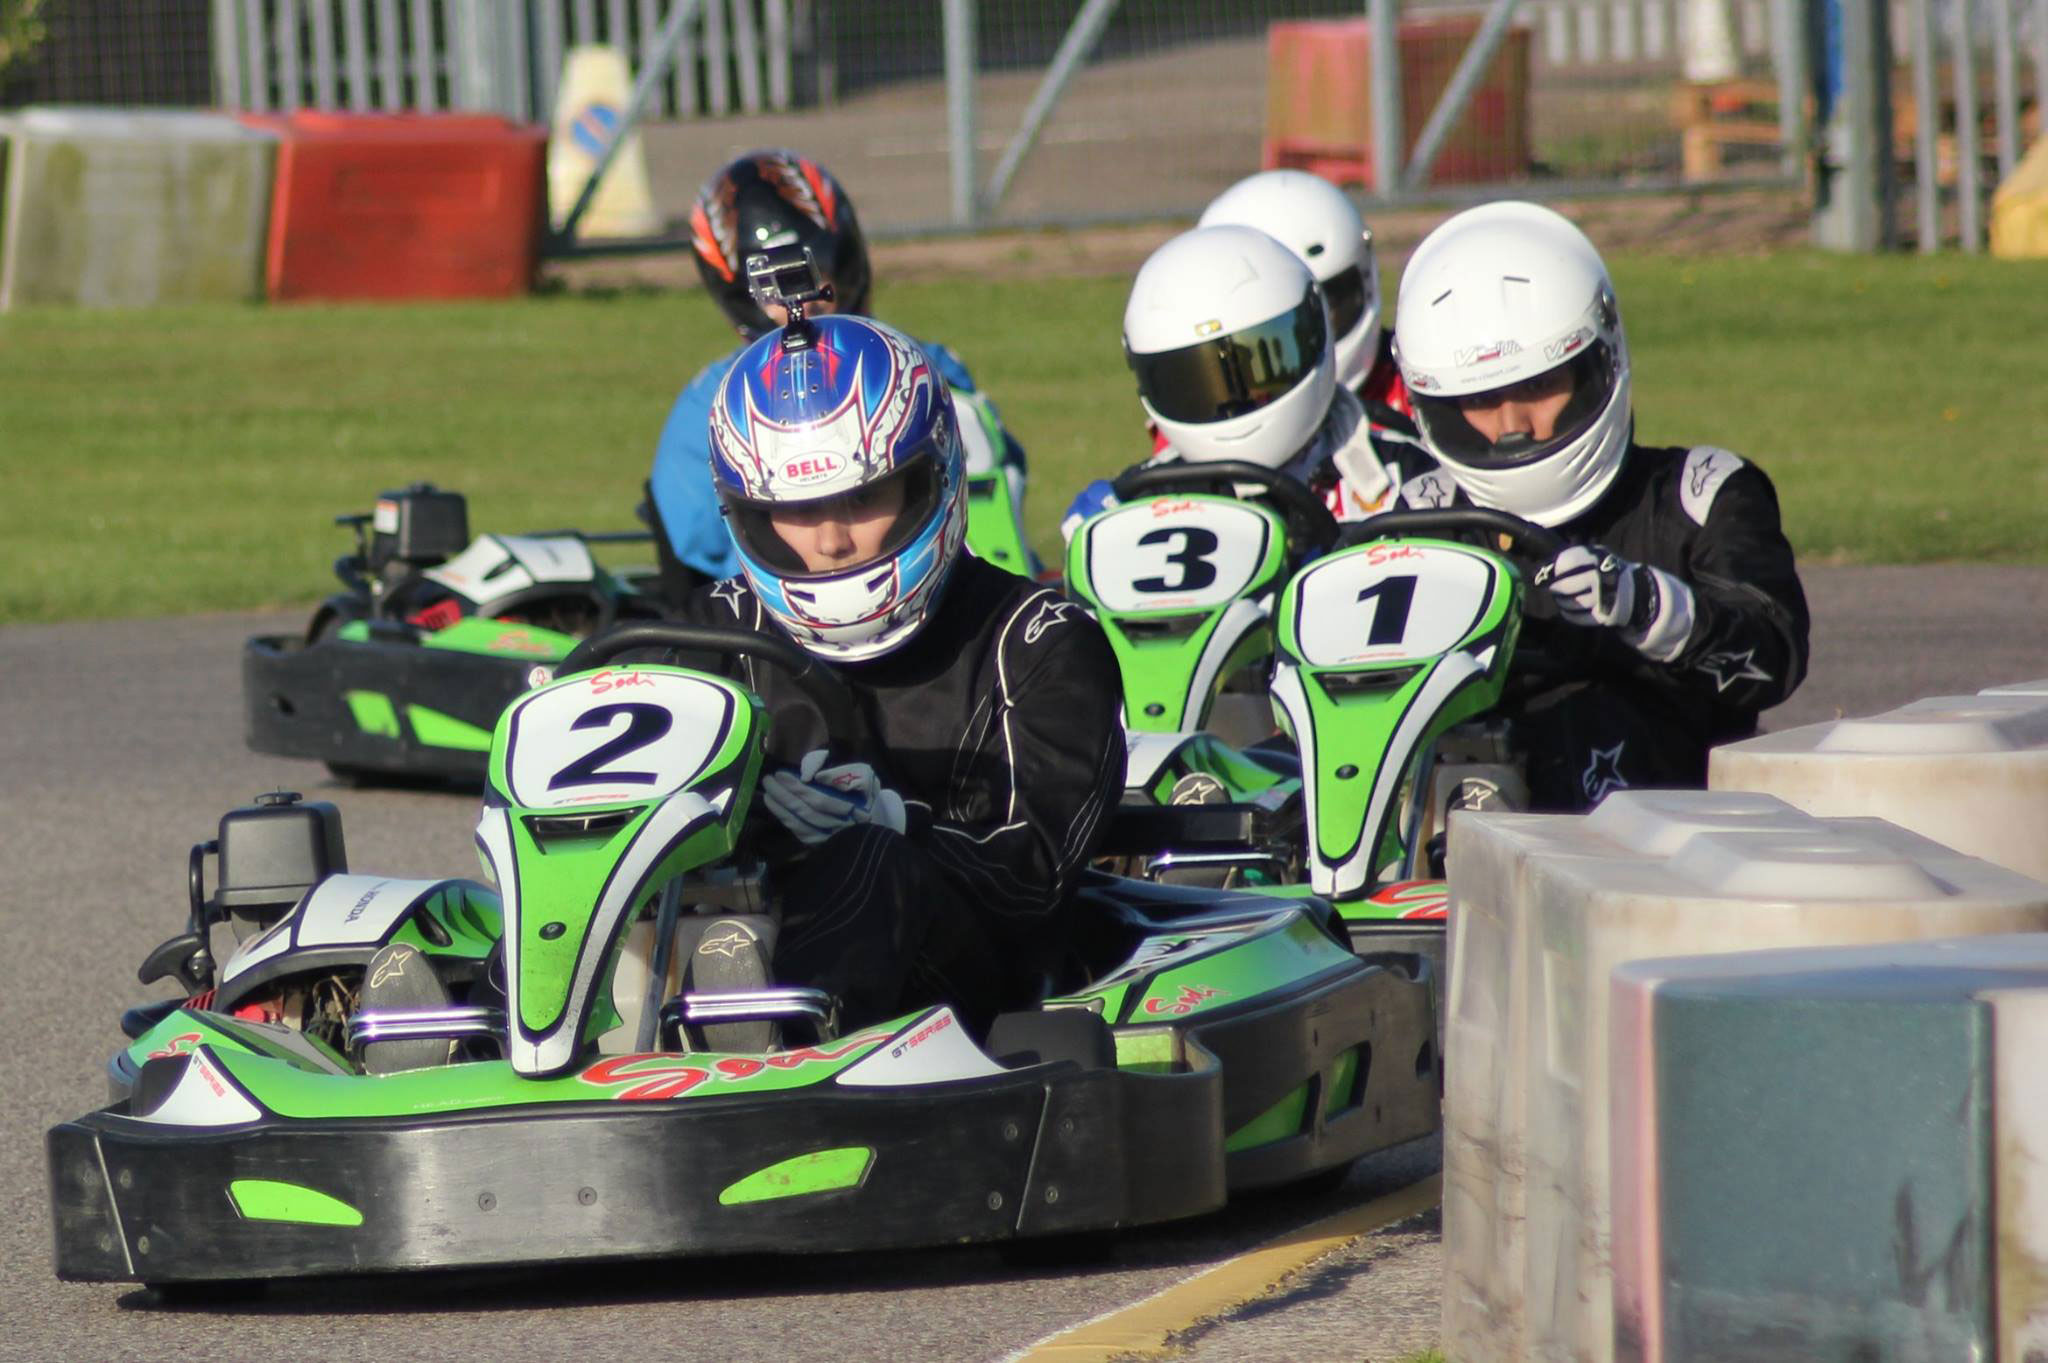 Outdoor Go Karting Event Formats at Sutton Circuit in Leicestershire